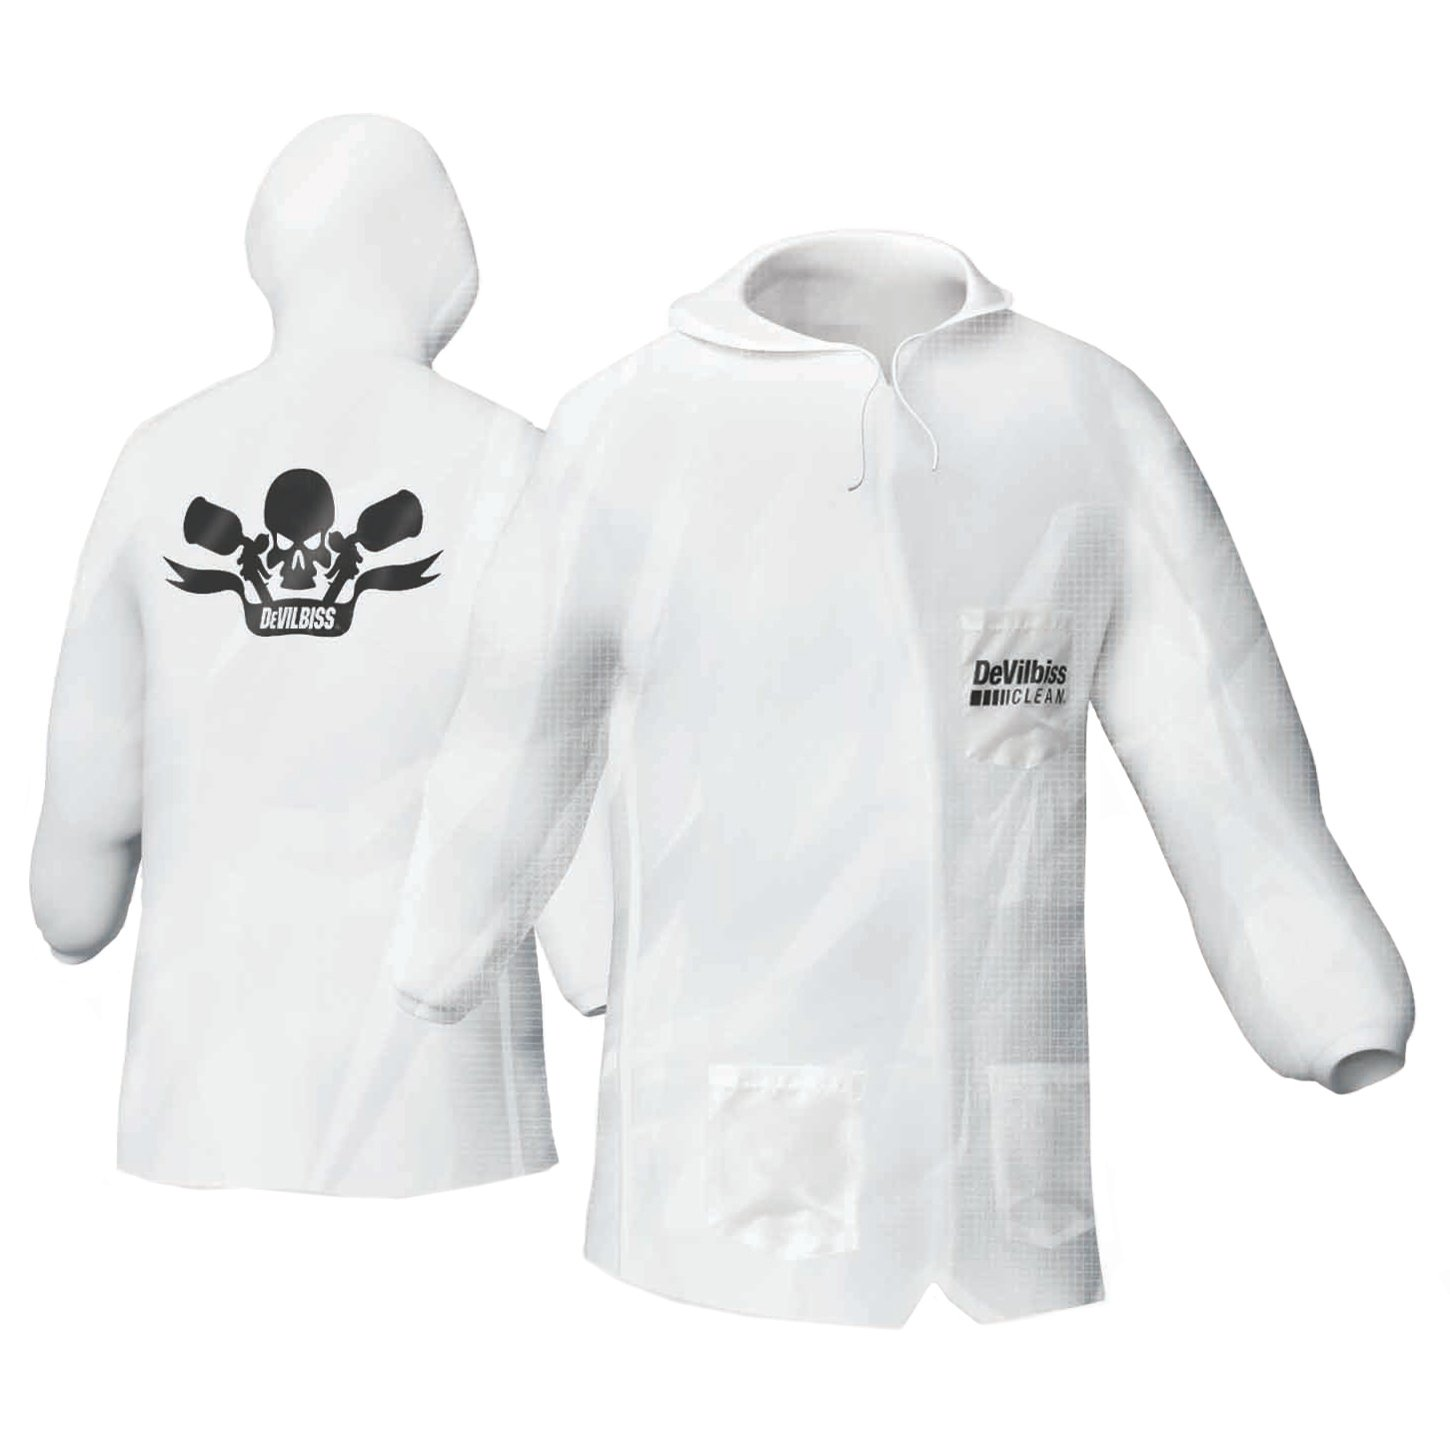 DeVilbiss DEV-803665 Reusable Lab Coat Recommended Larg Ranking TOP15 with Hood Pullover -